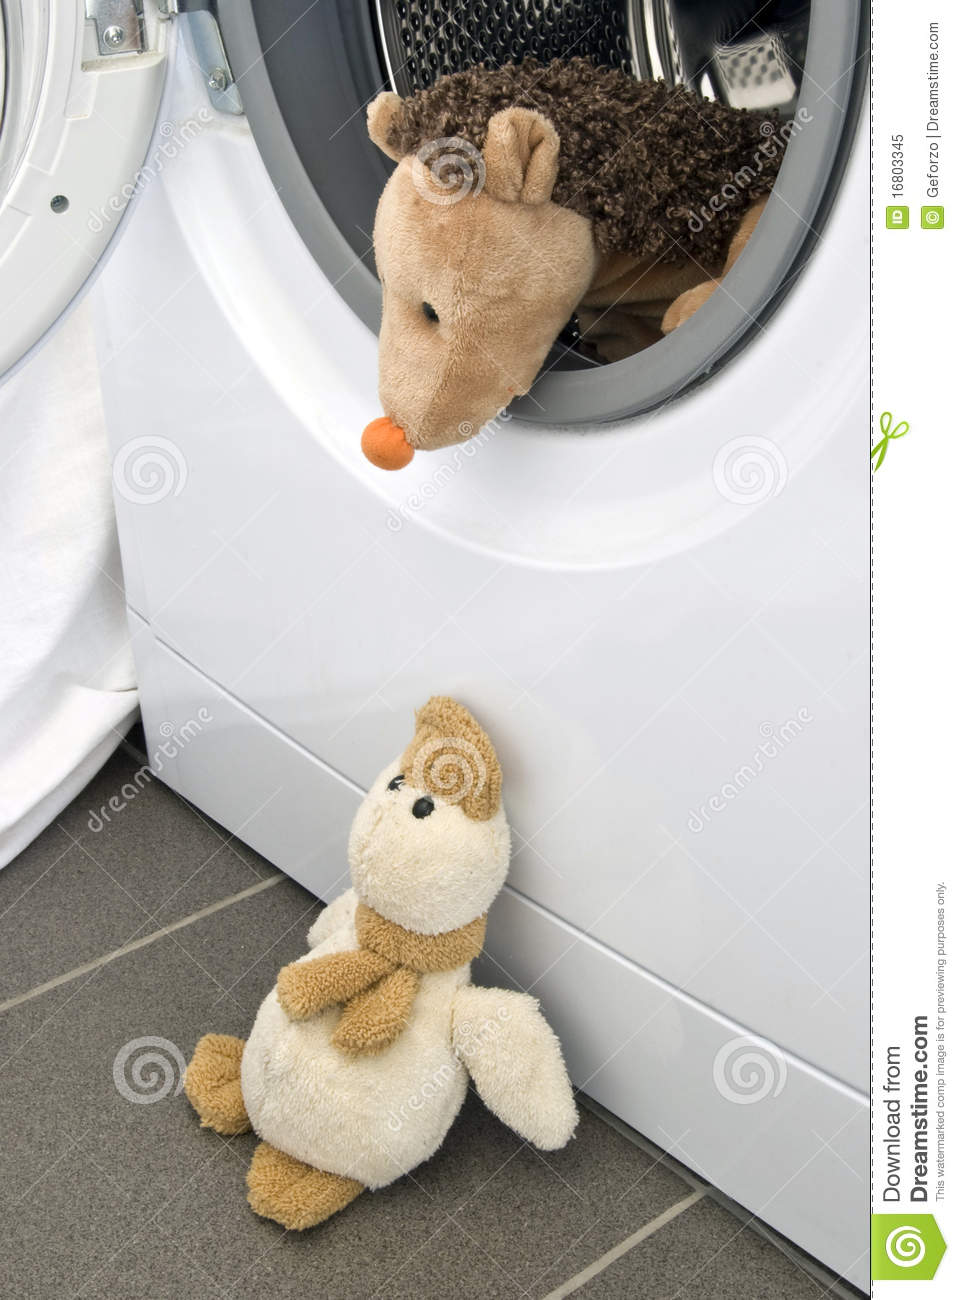 Toy Hedgehog In Washing Machine With Duck Royalty Free